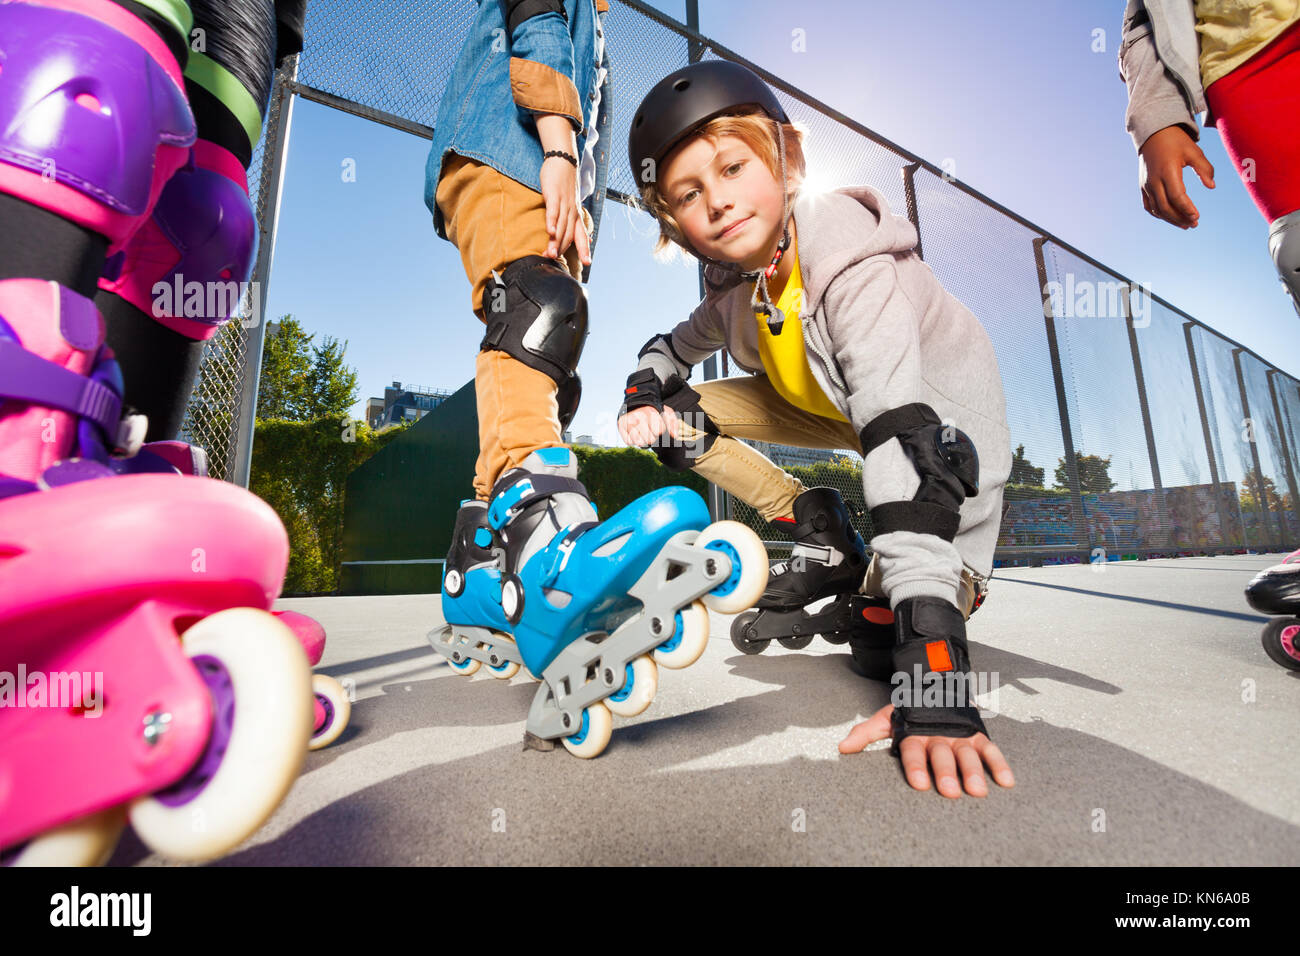 Preteen boy on roller skates at outdoor stadium at sunny day - Stock Image